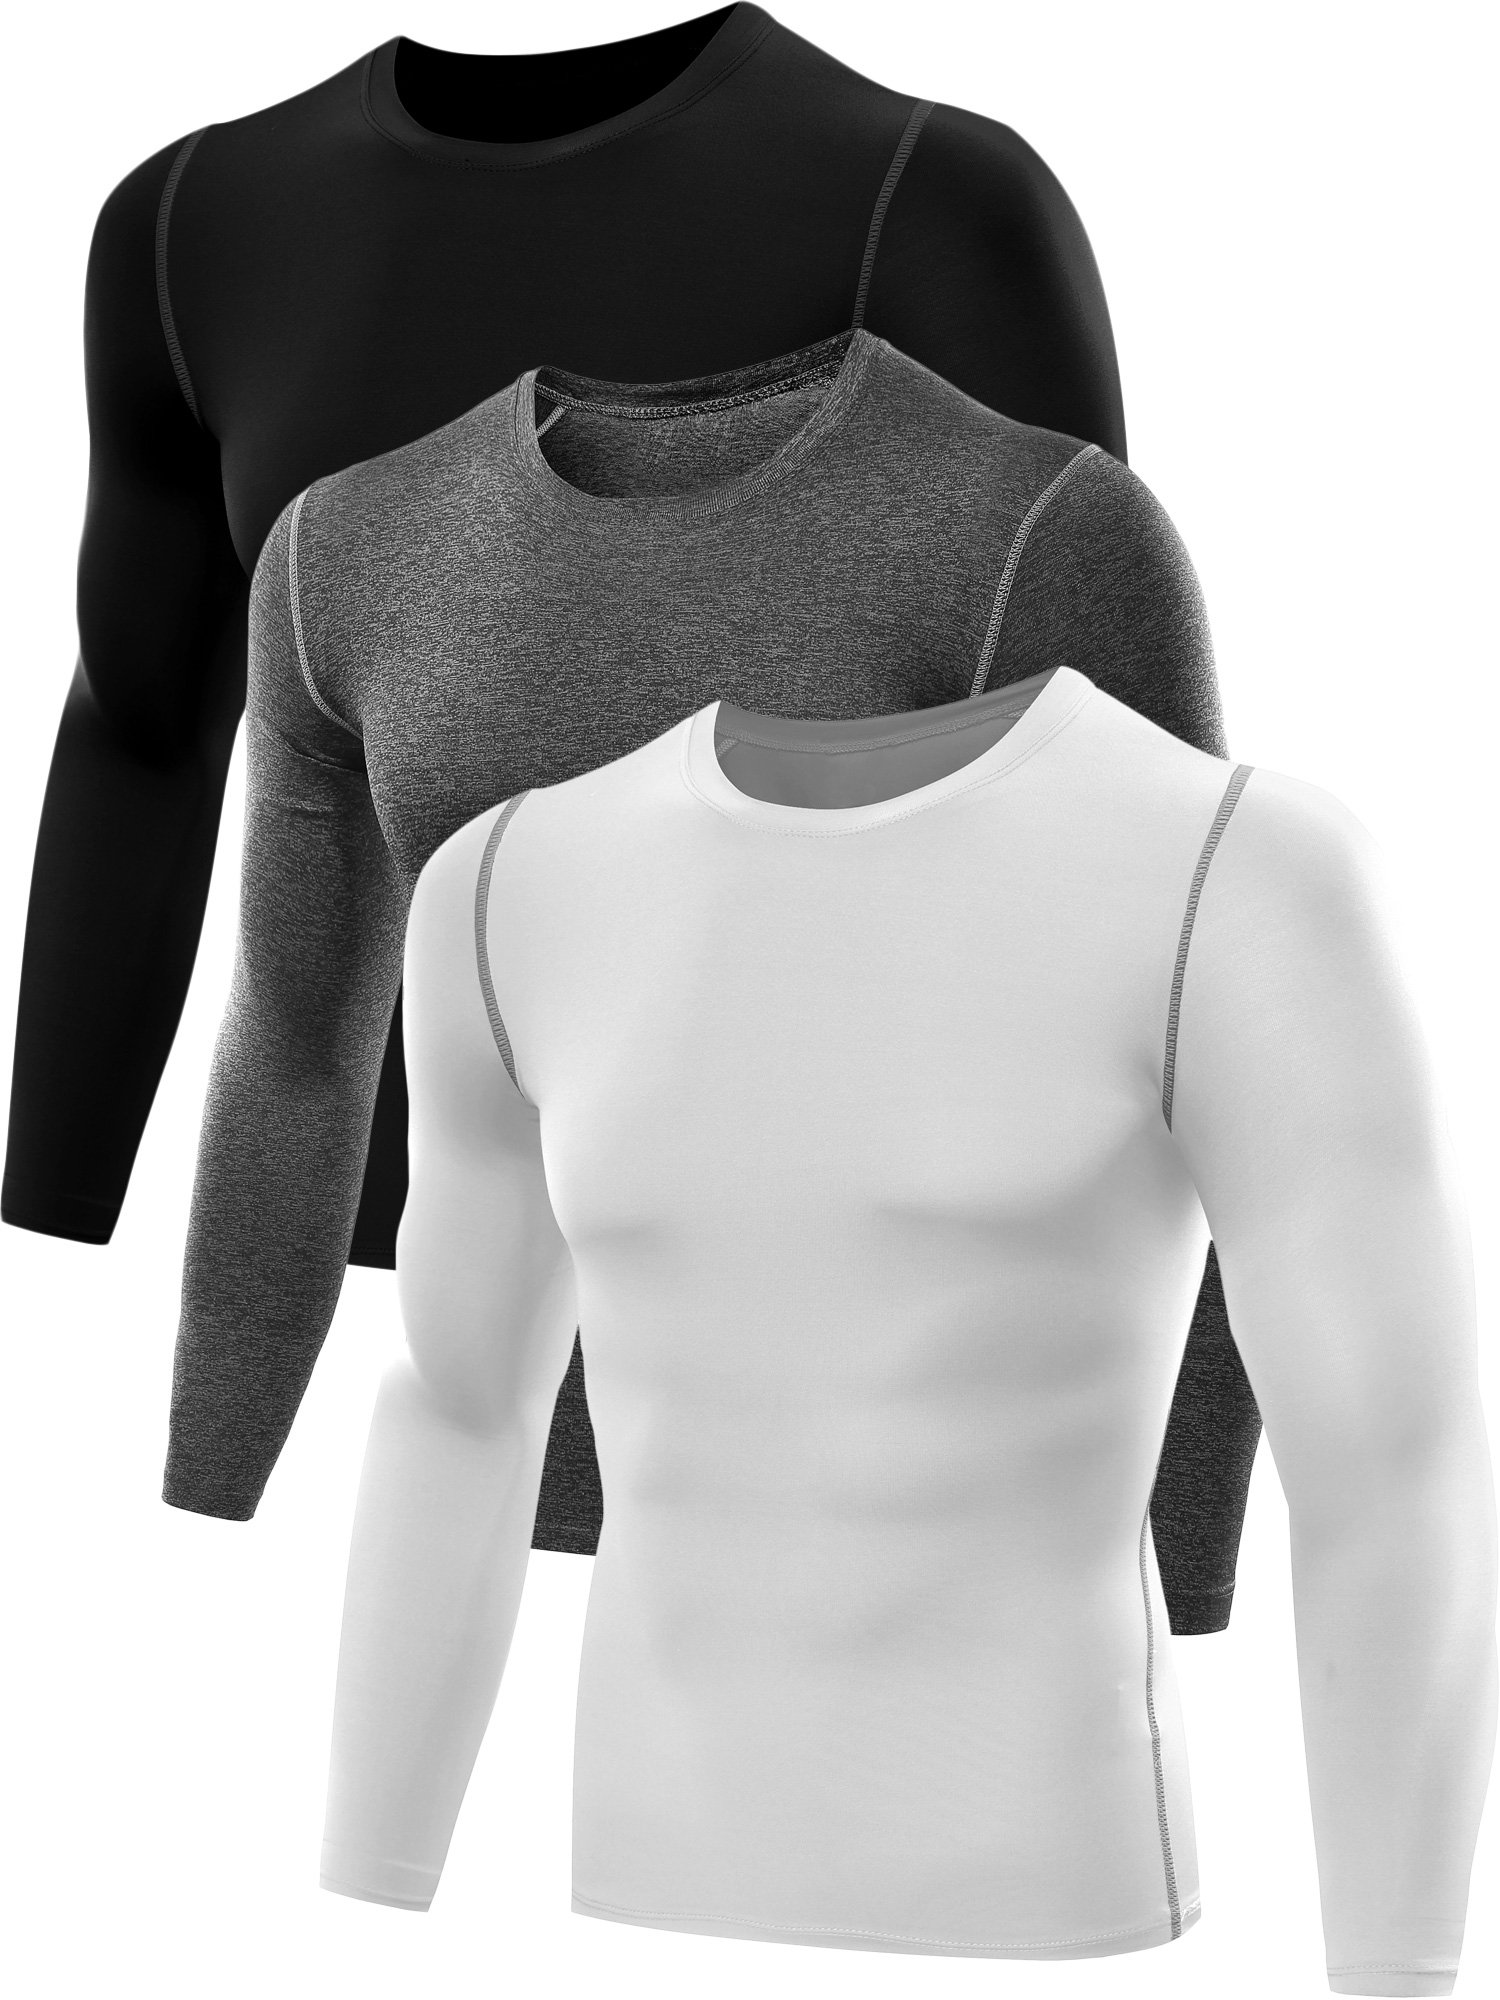 Neleus Men's 3 Pack Athletic Compression Sport Running T Shirt Long Sleeve Base Layer,Black,Grey,Whie,US XL,EU 2XL by Neleus